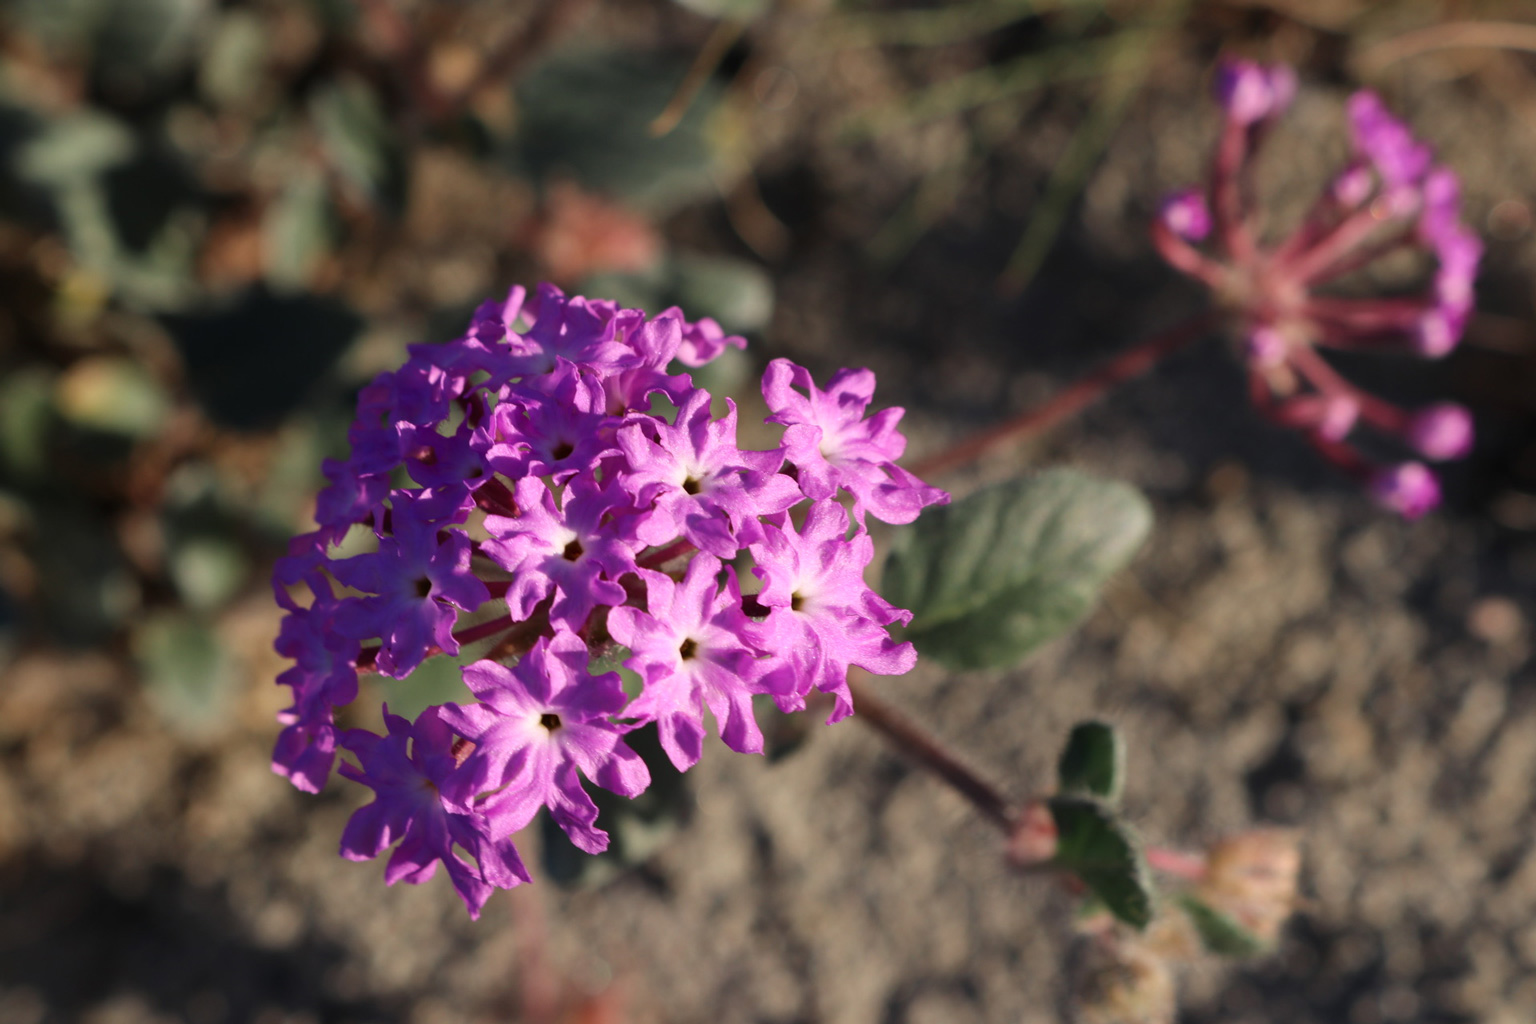 A close-up of a Sand Verbena flower cluster.